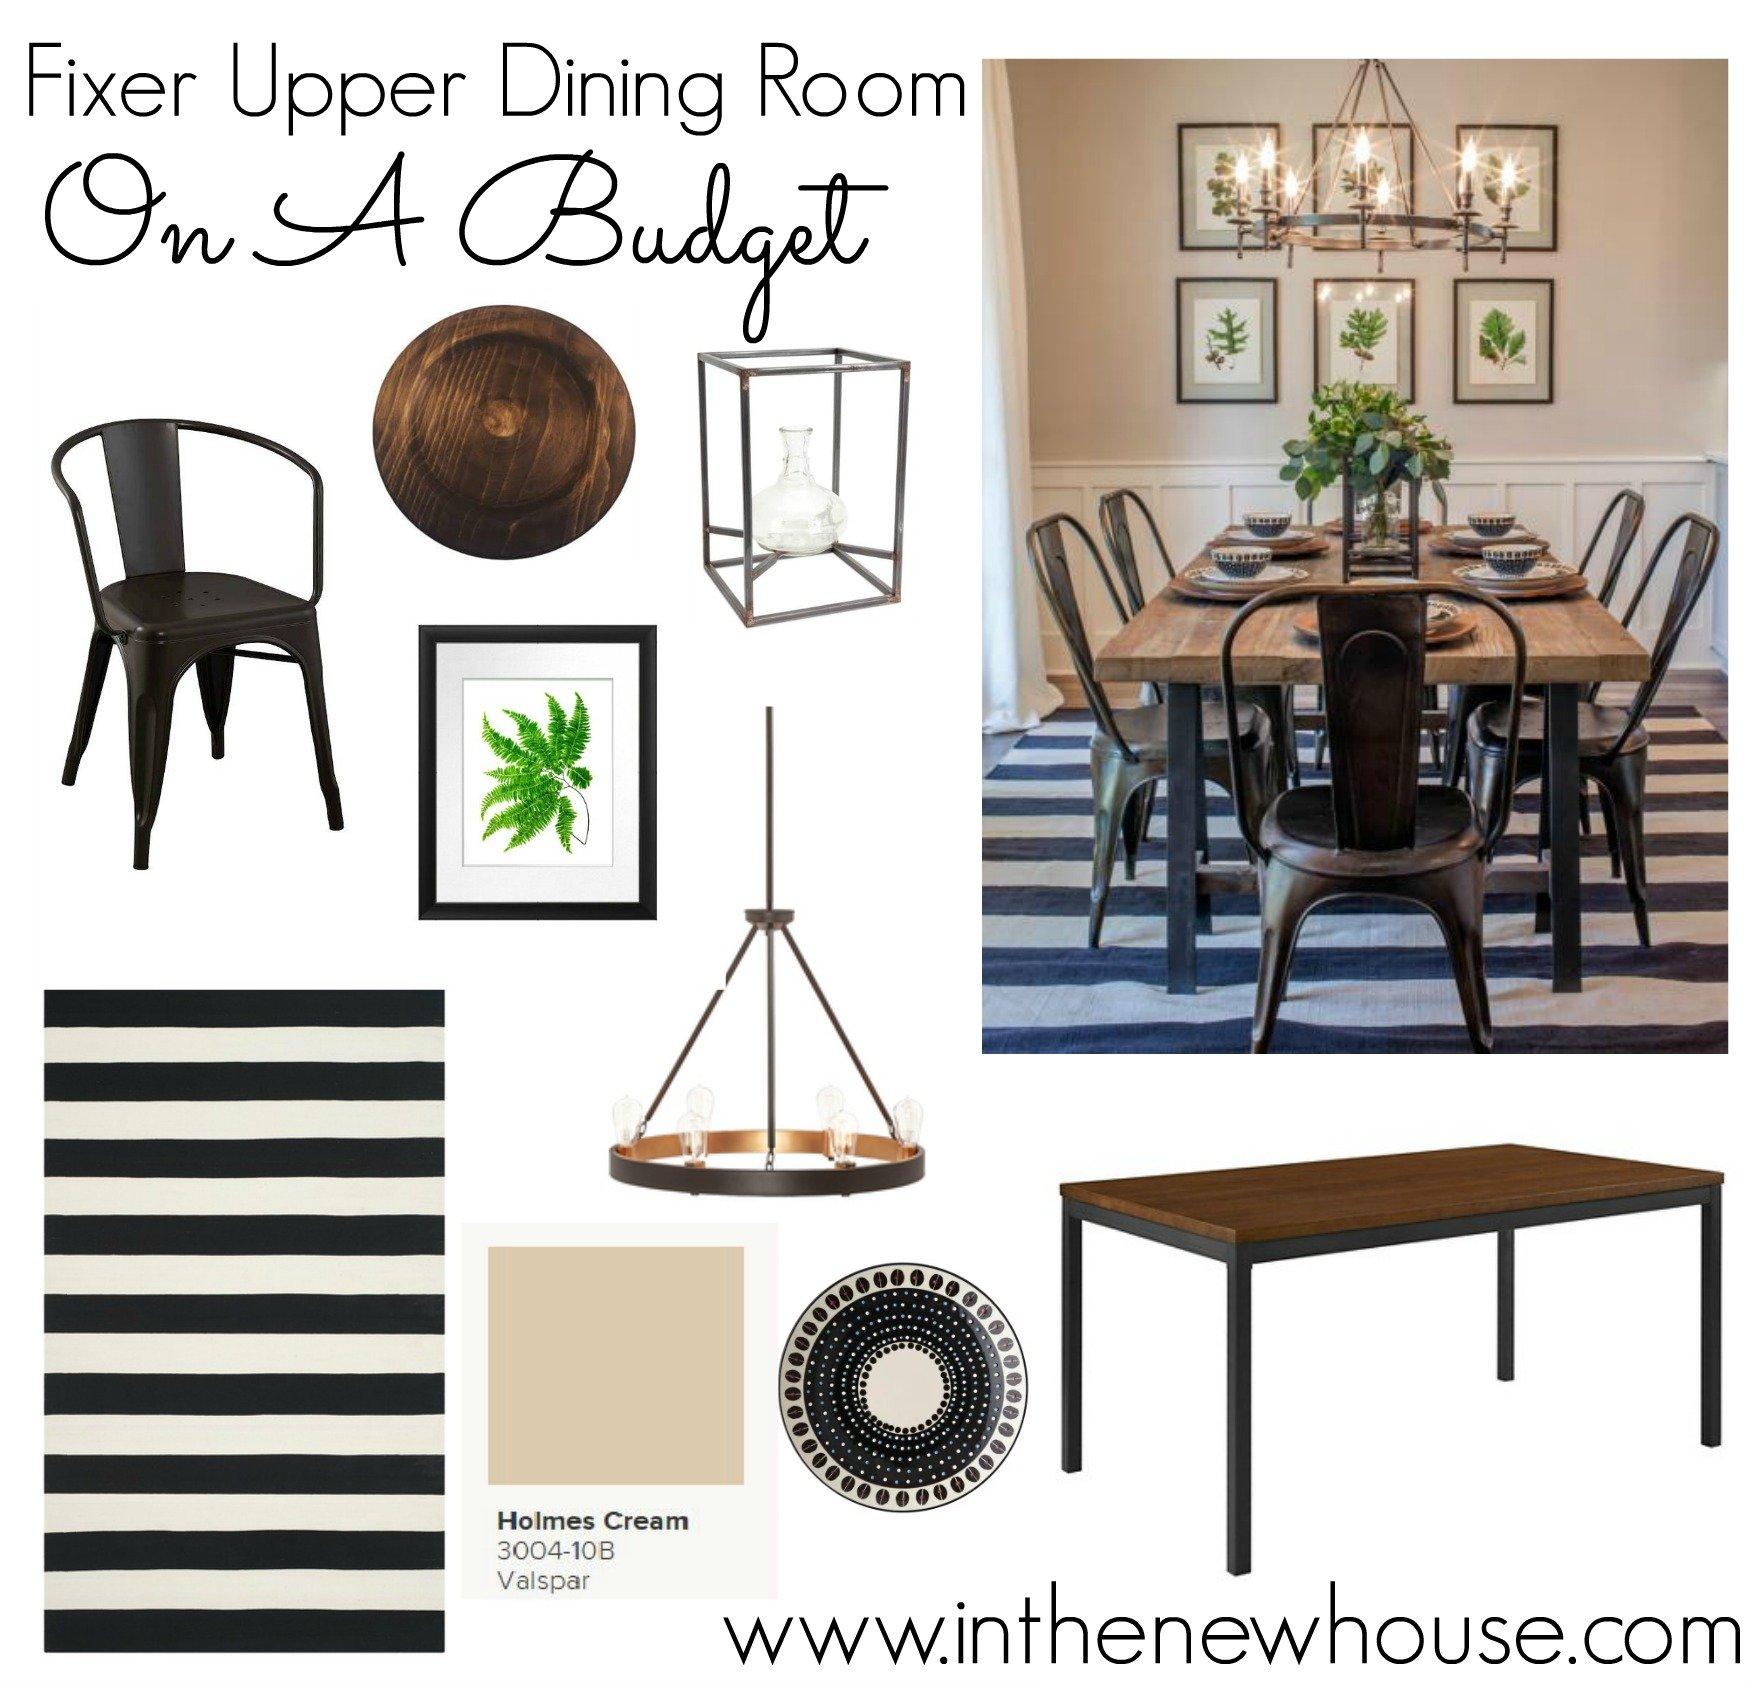 Get the fixer upper look for half the price in the new house for Fixer upper dining room ideas